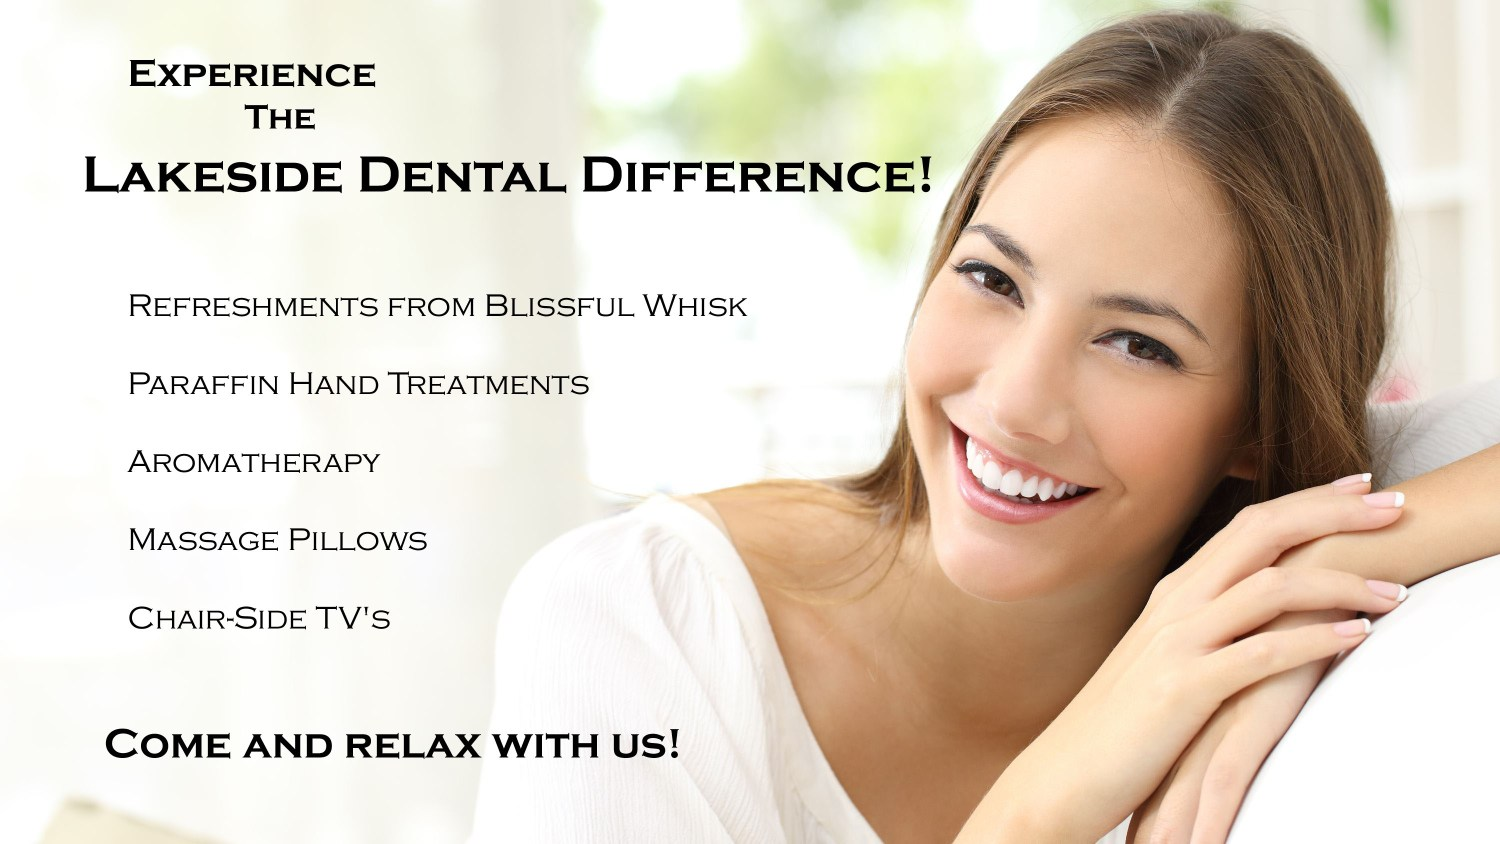 Lakeside Dental difference smiling woman with white teeth